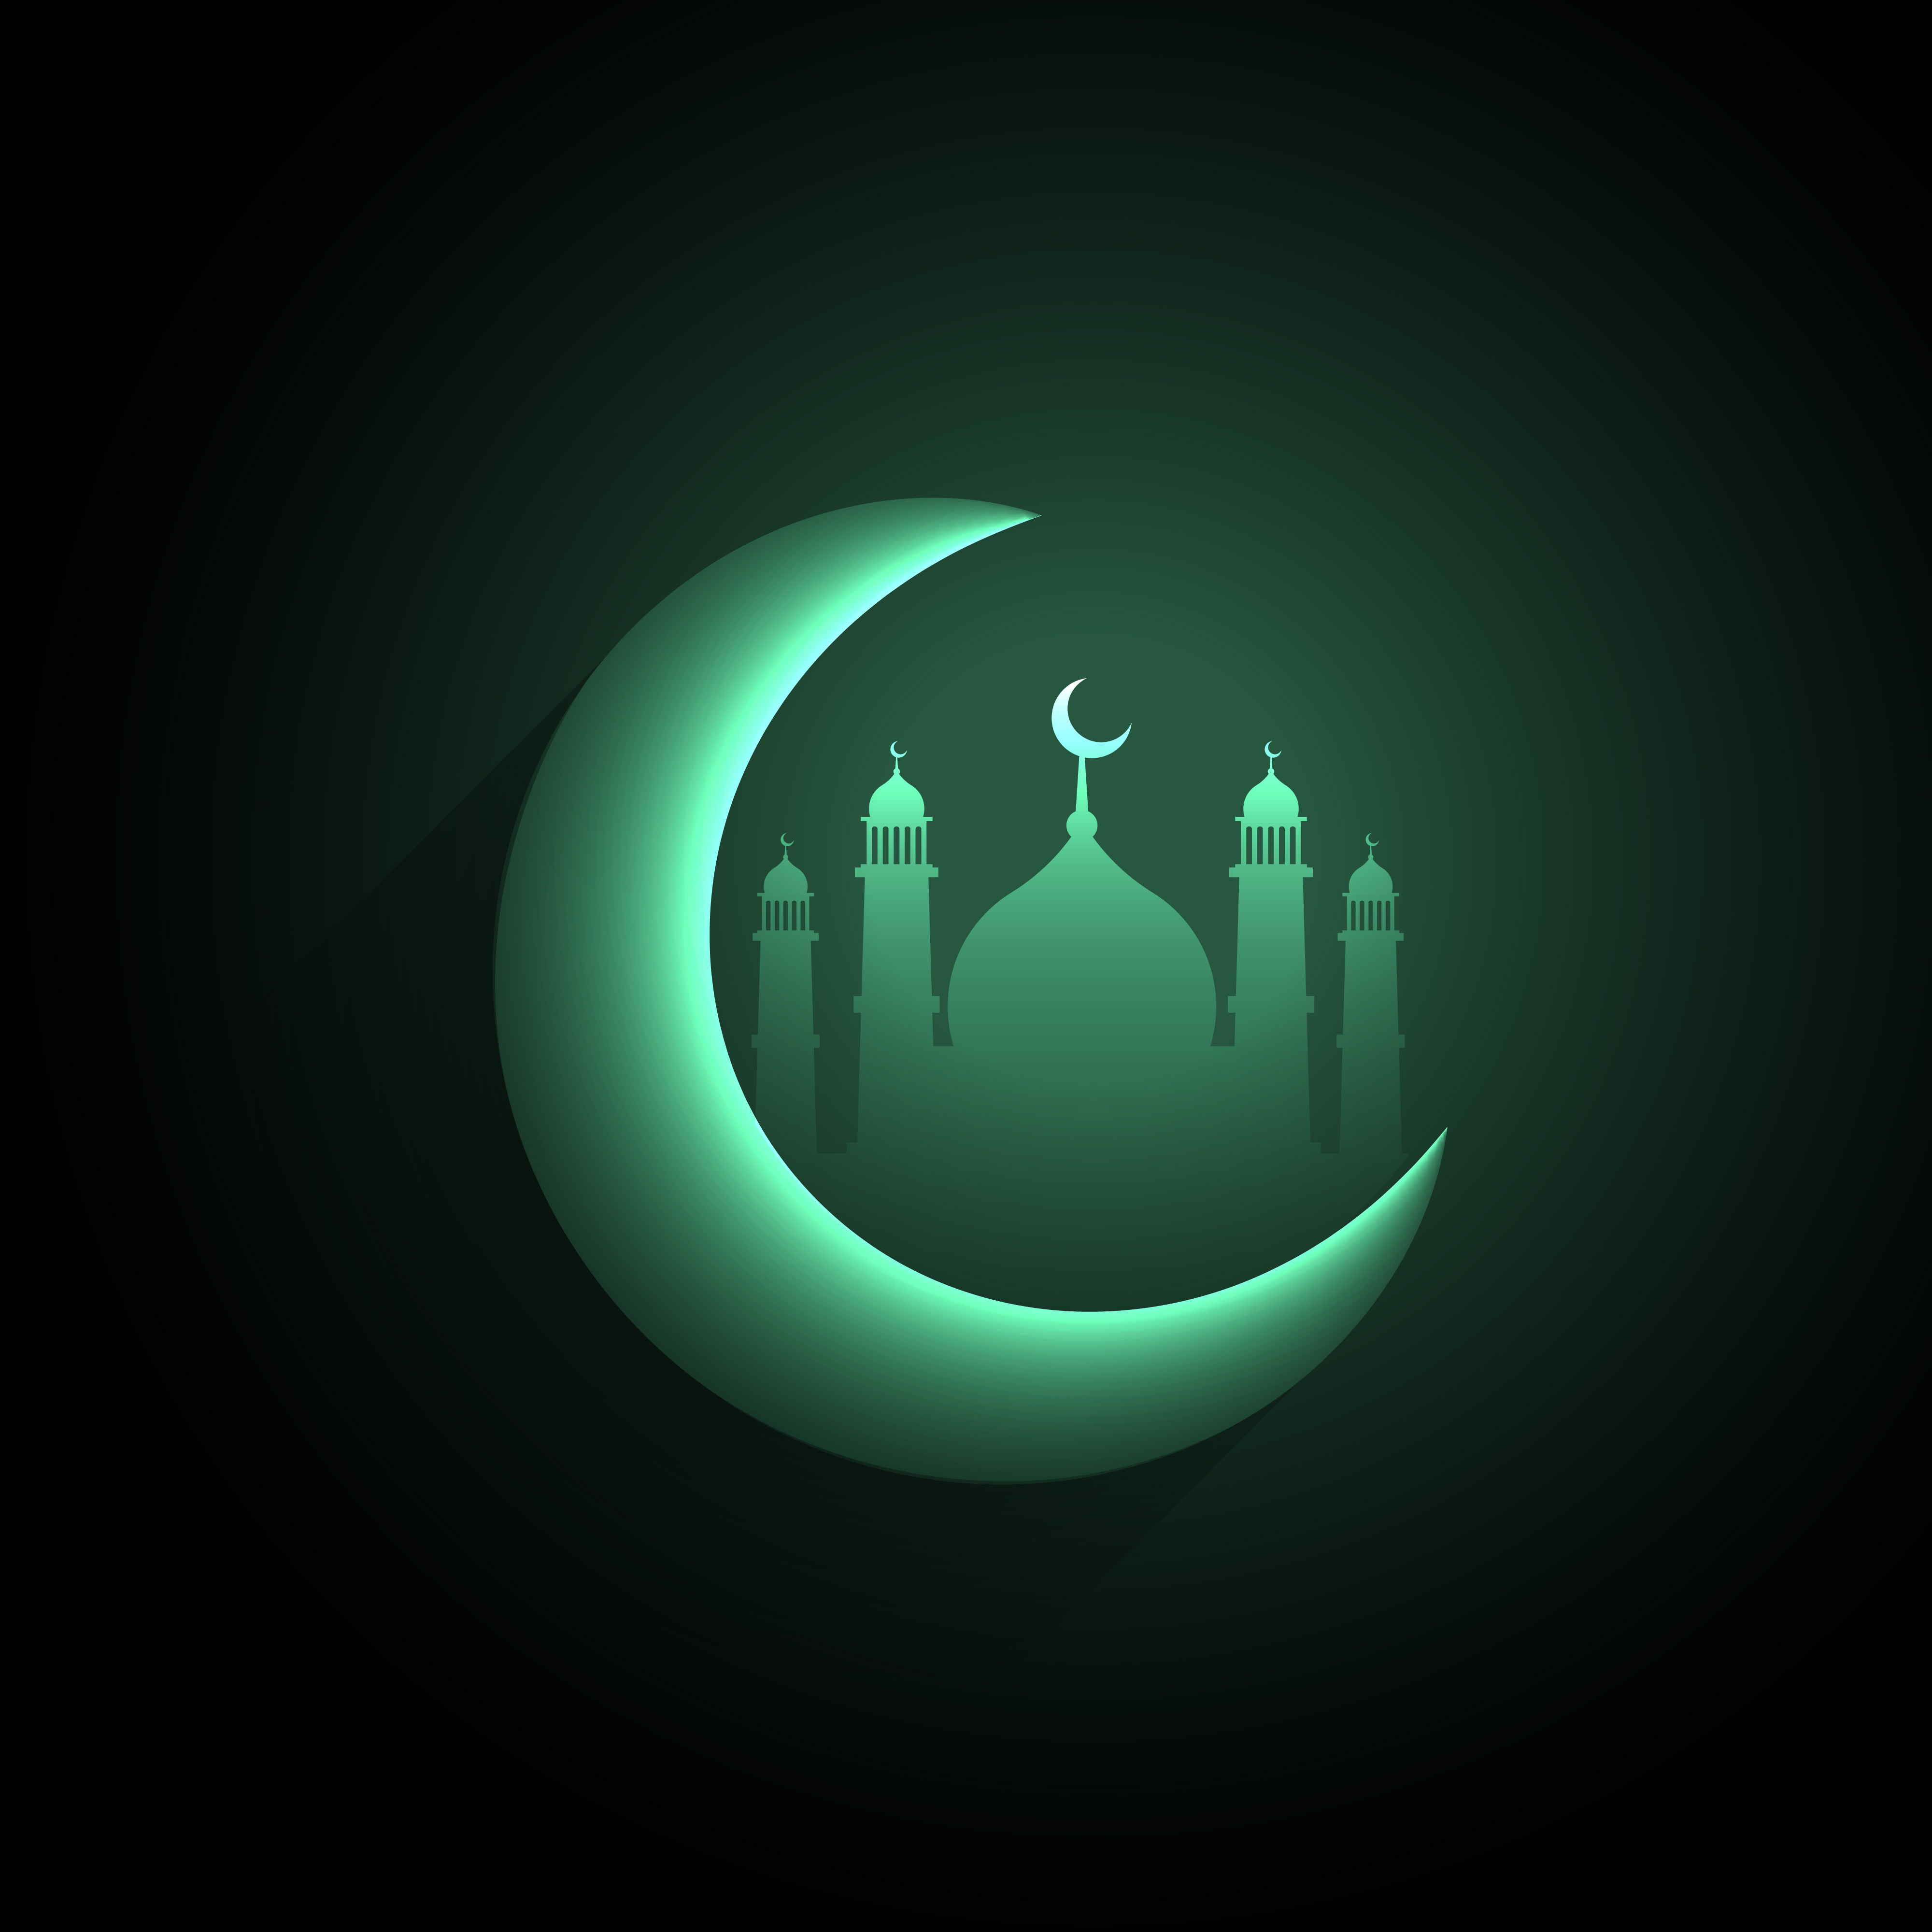 Shiny Crescent Moon With Mosque